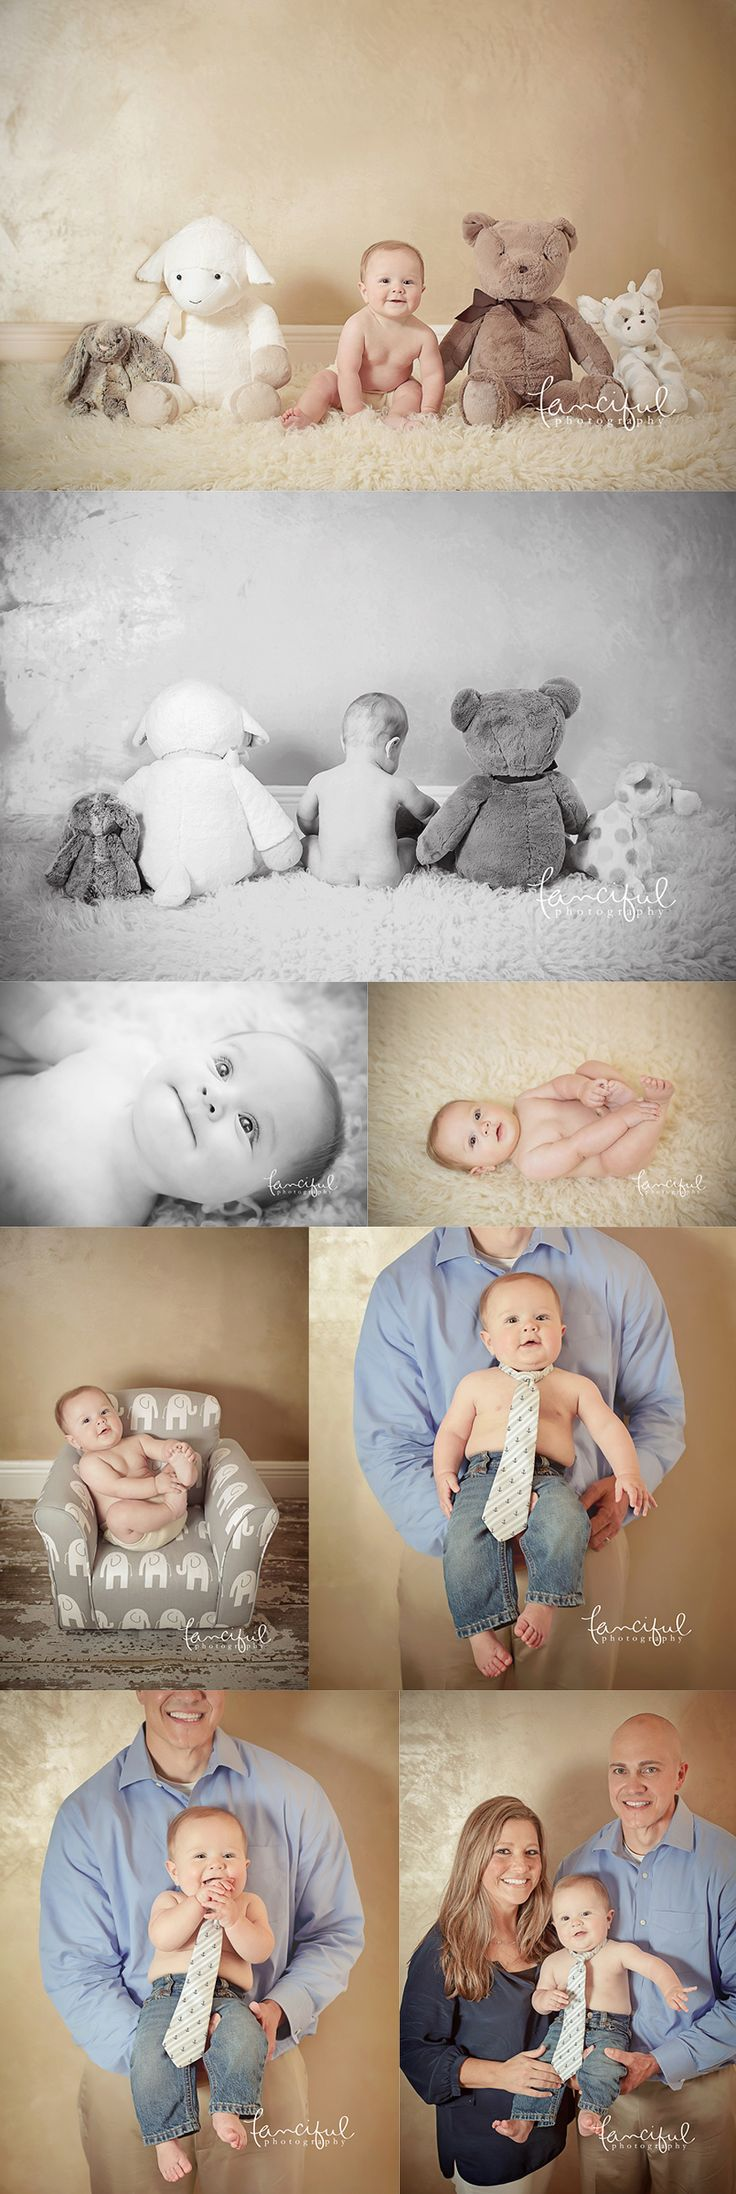 six-month portrait session, baby boy photos, sarasota baby photographer, #photography, #baby